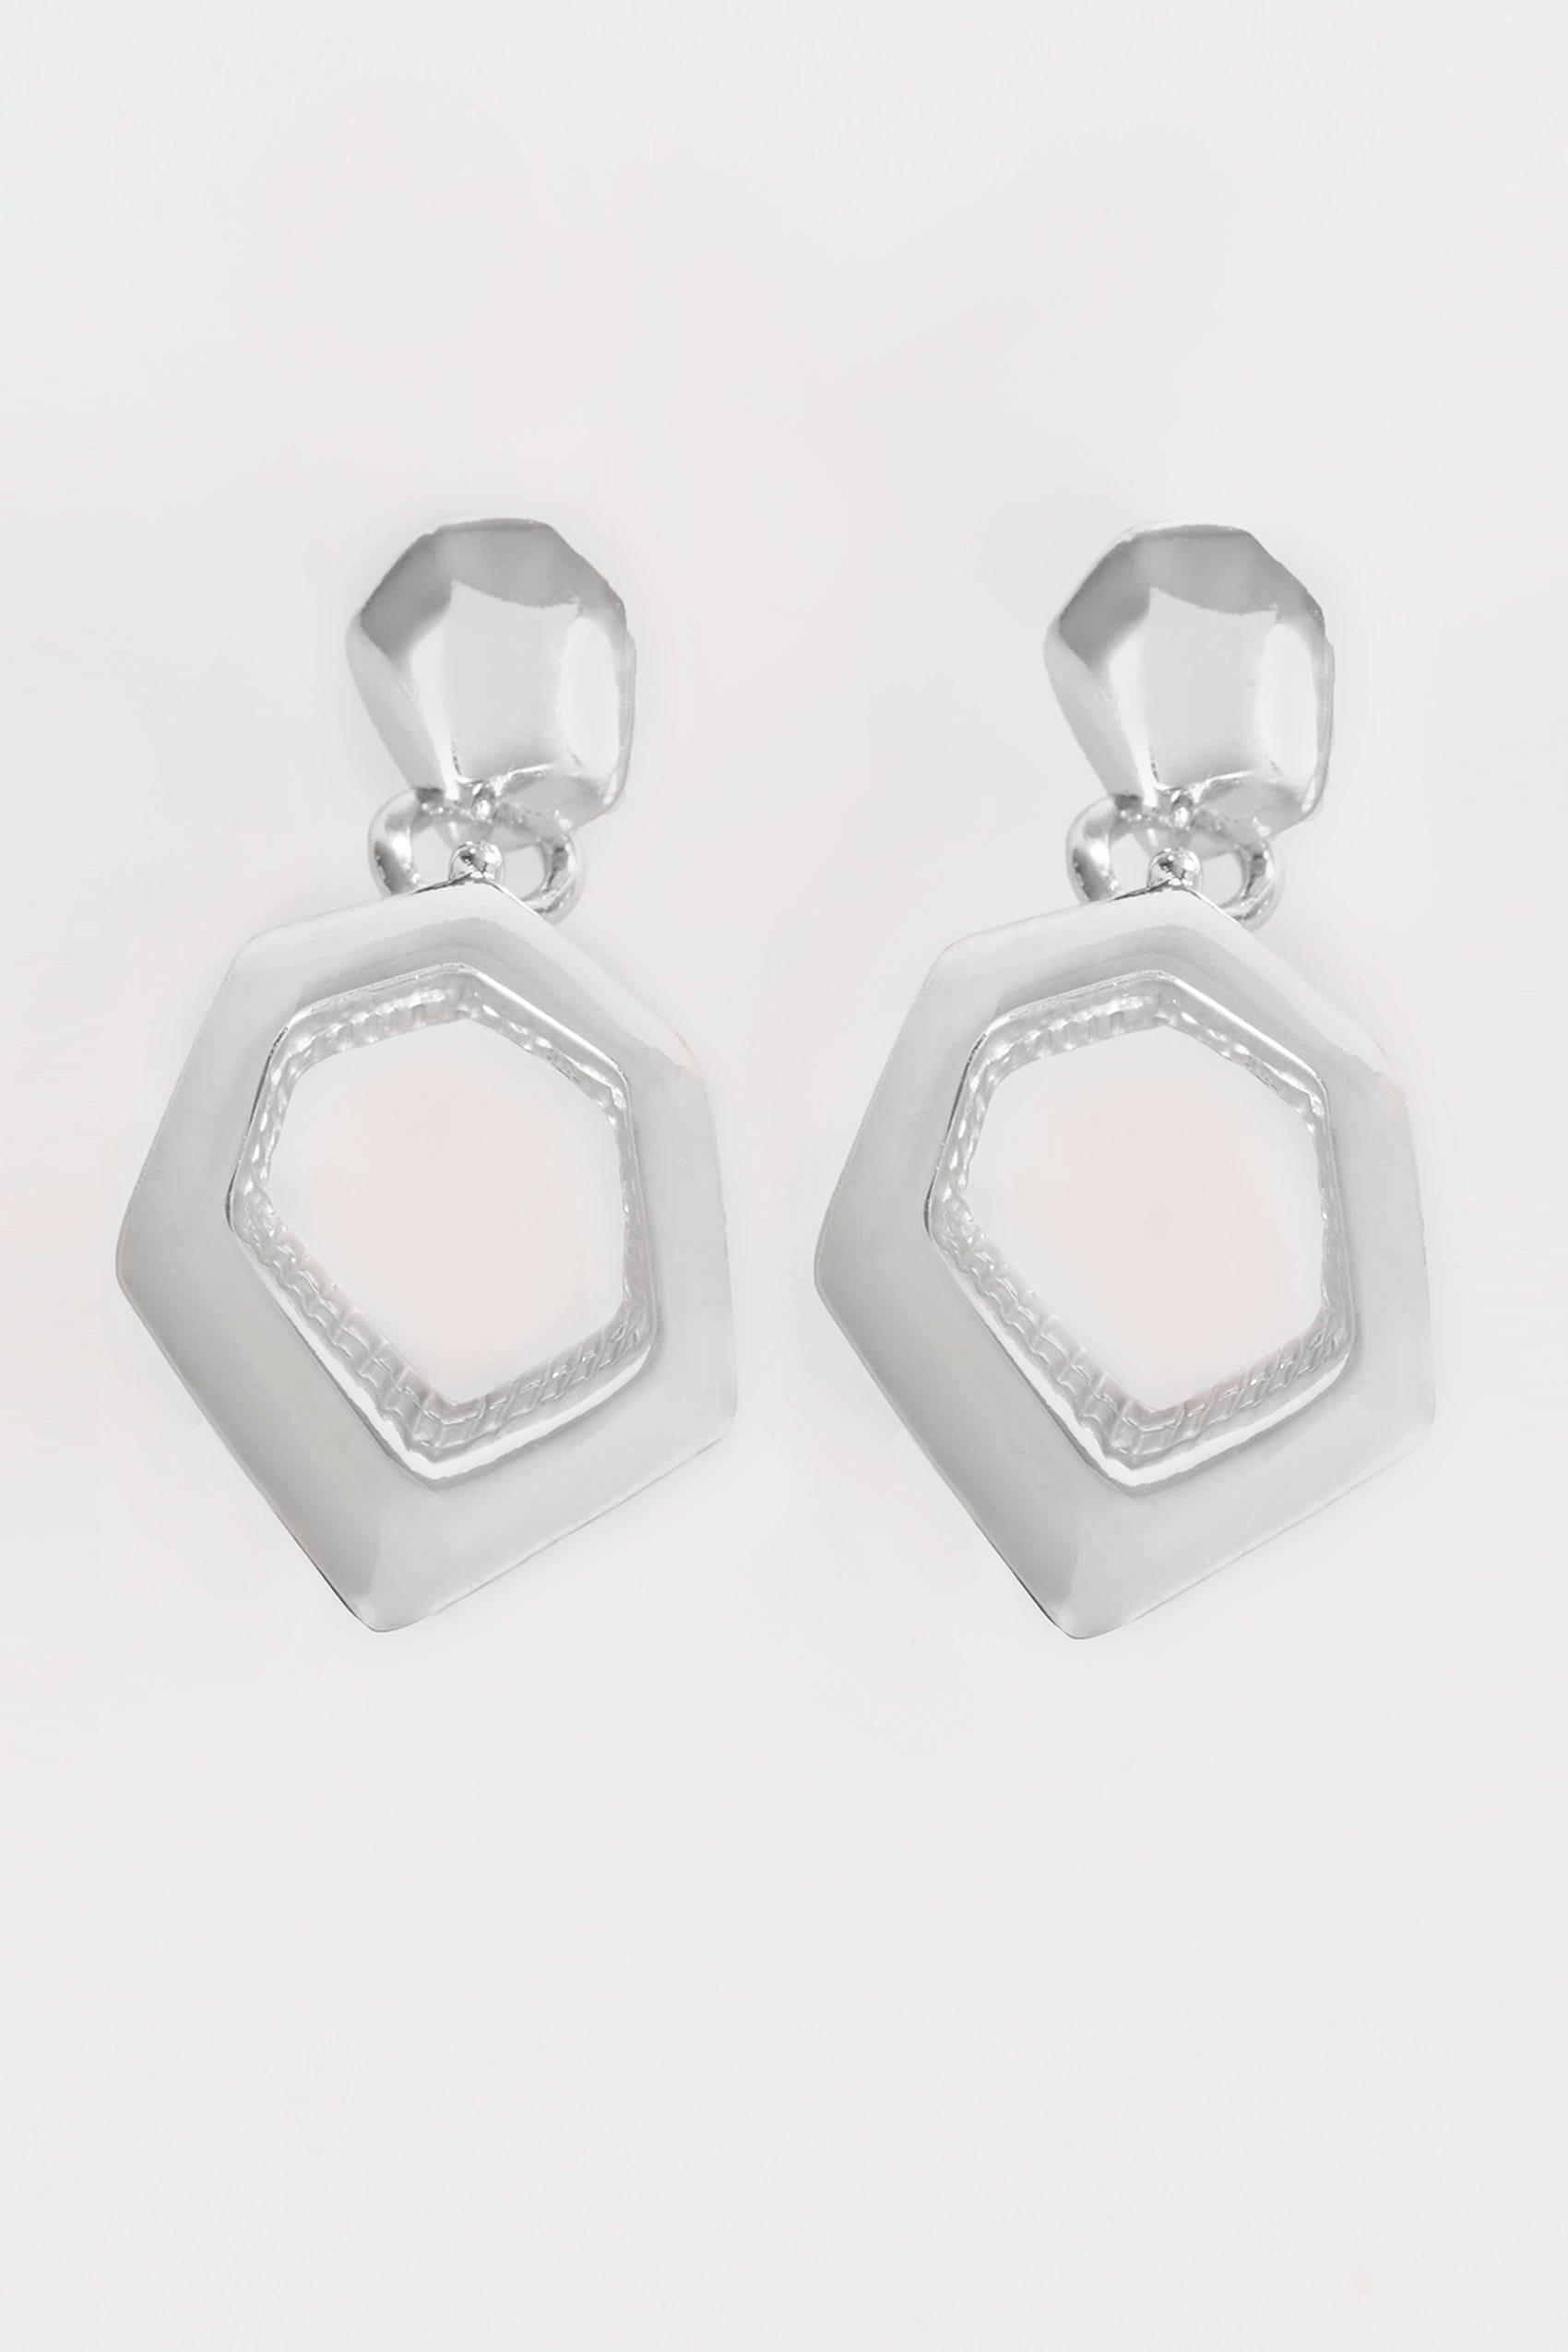 sophisticato hexagon jackson rachel jewellery earrings